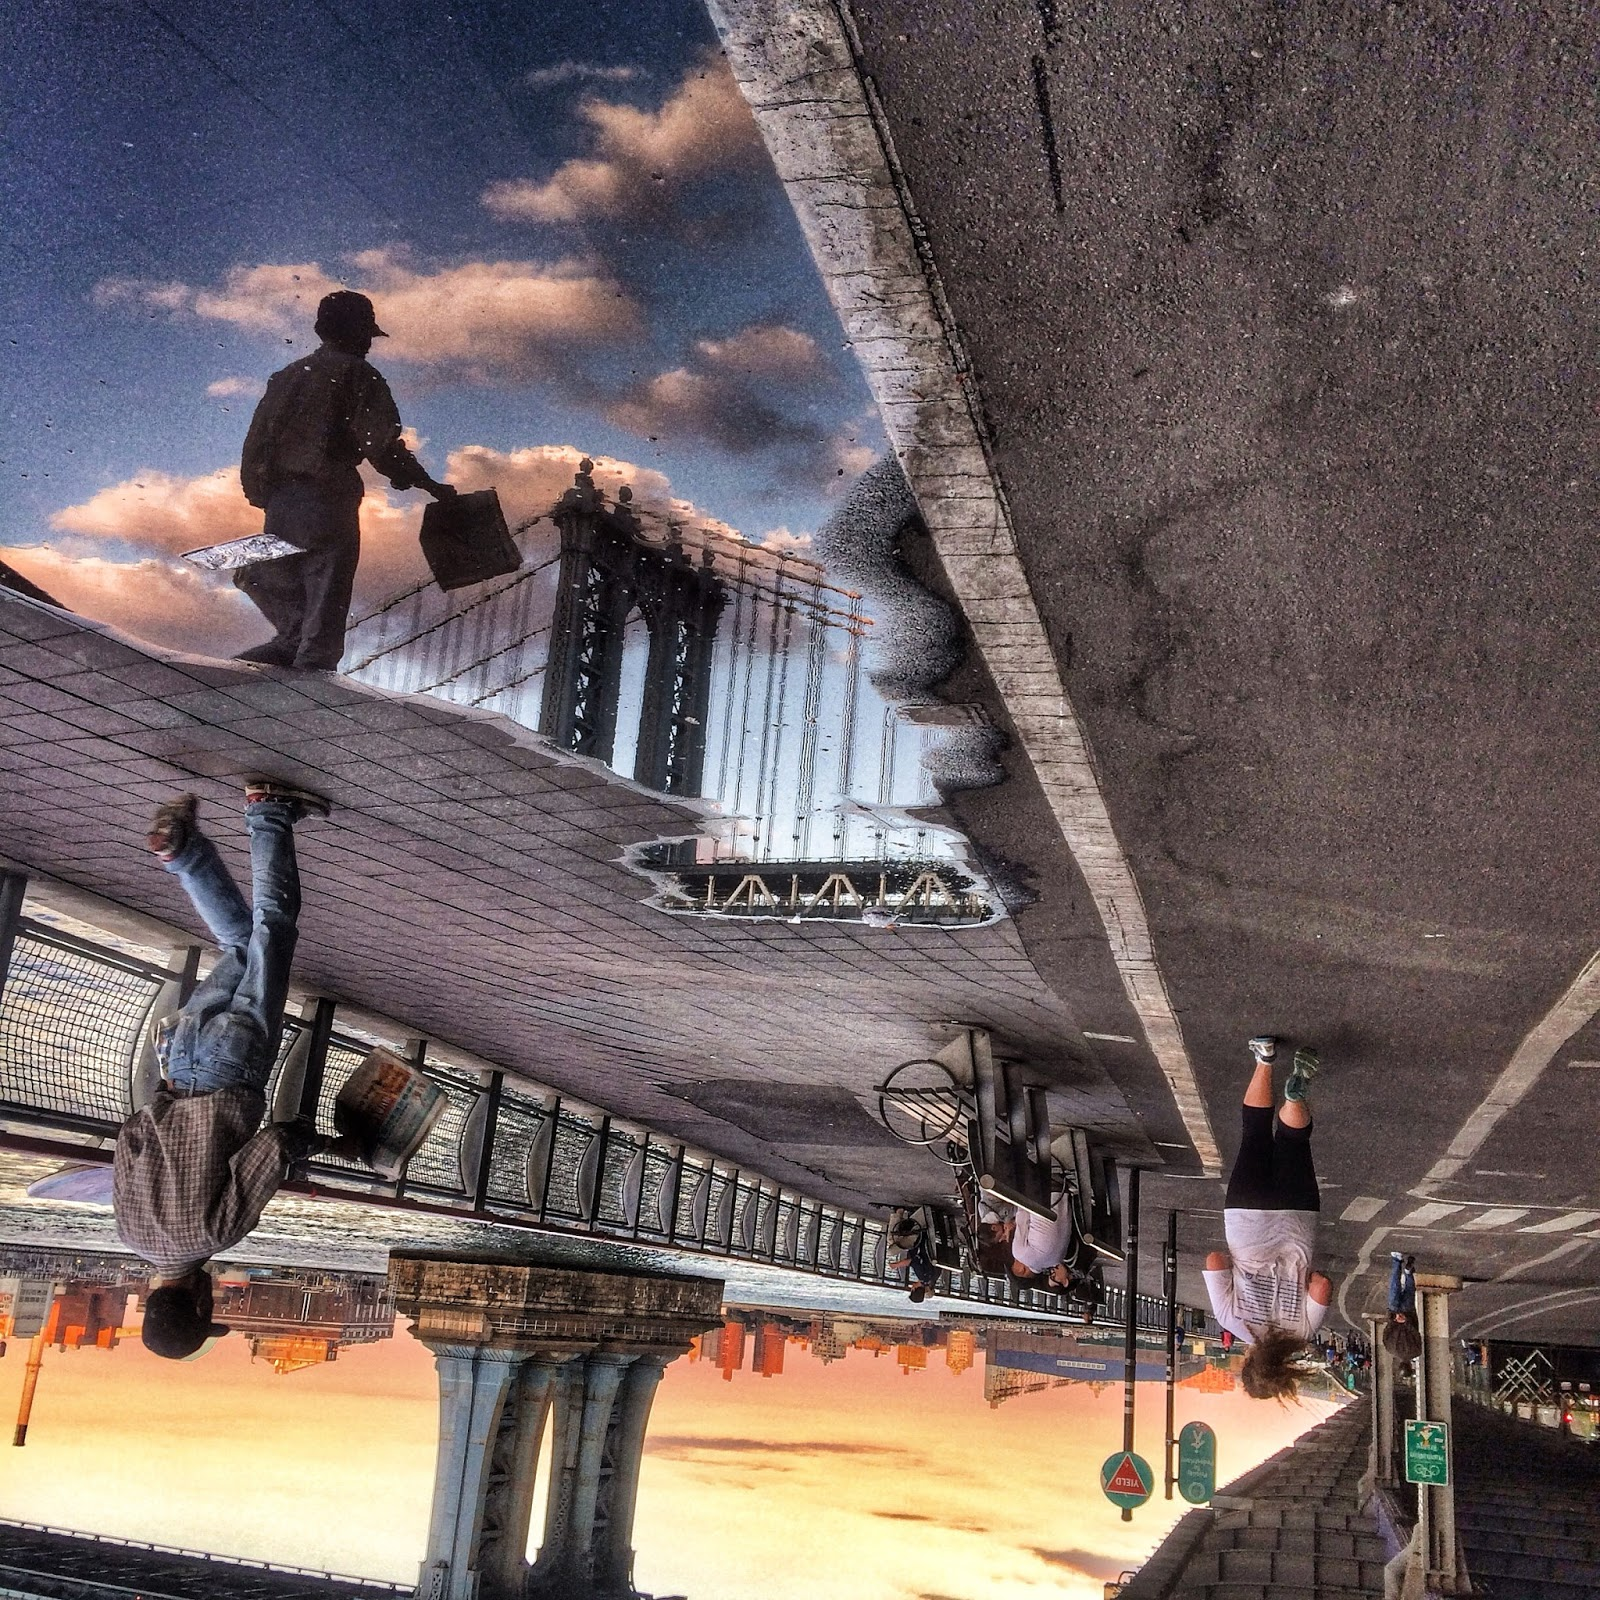 East River Reflections, #eastriver #eastriverreflections #reflections 2014